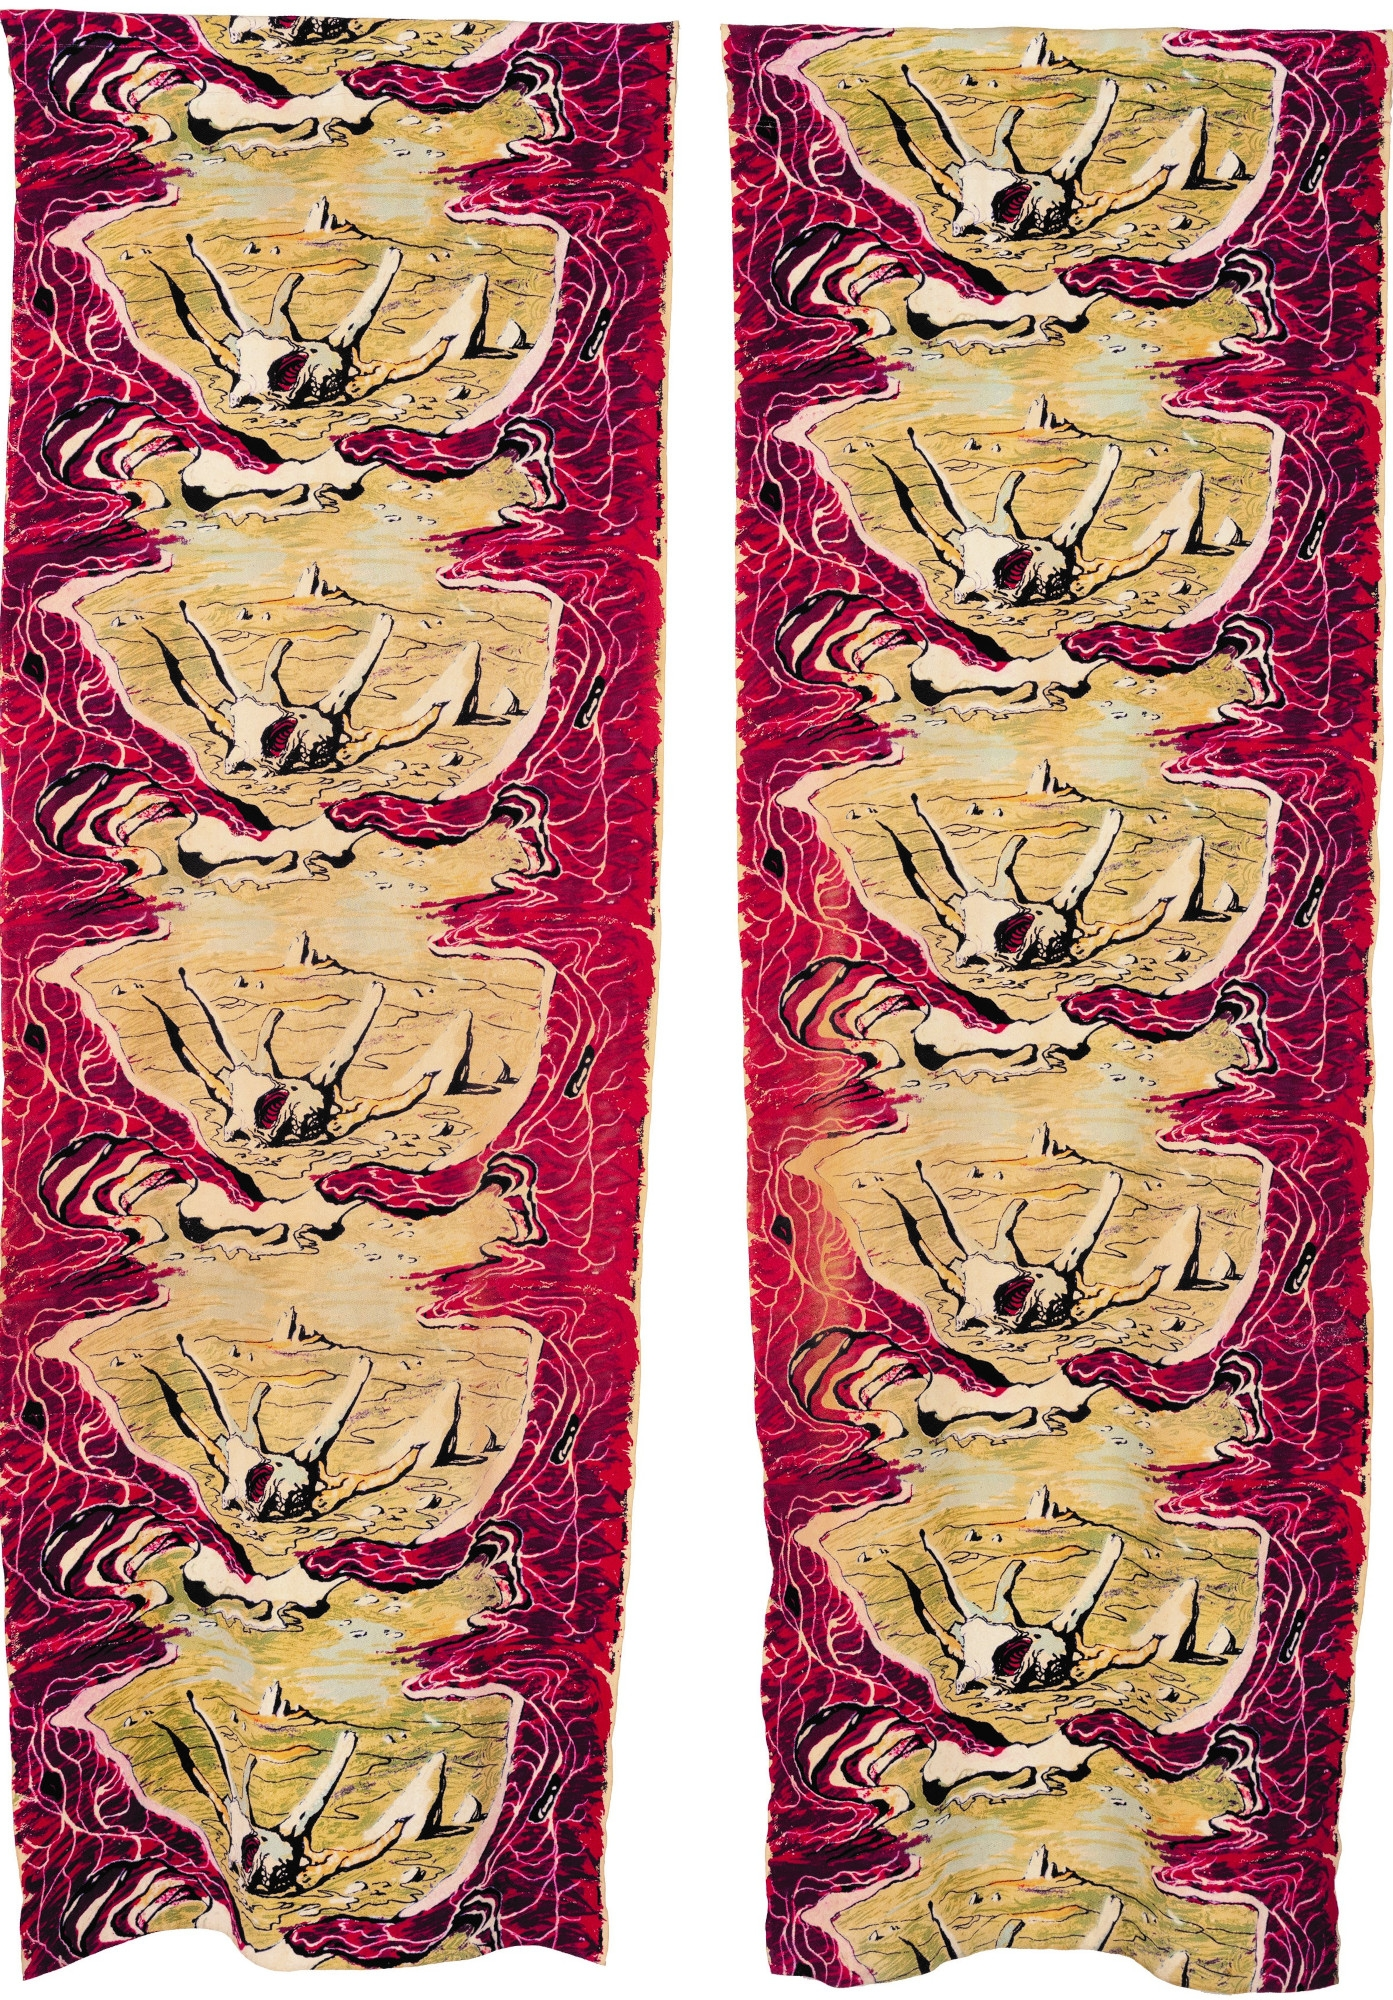 Pair of red curtains with central rock and tree motif.